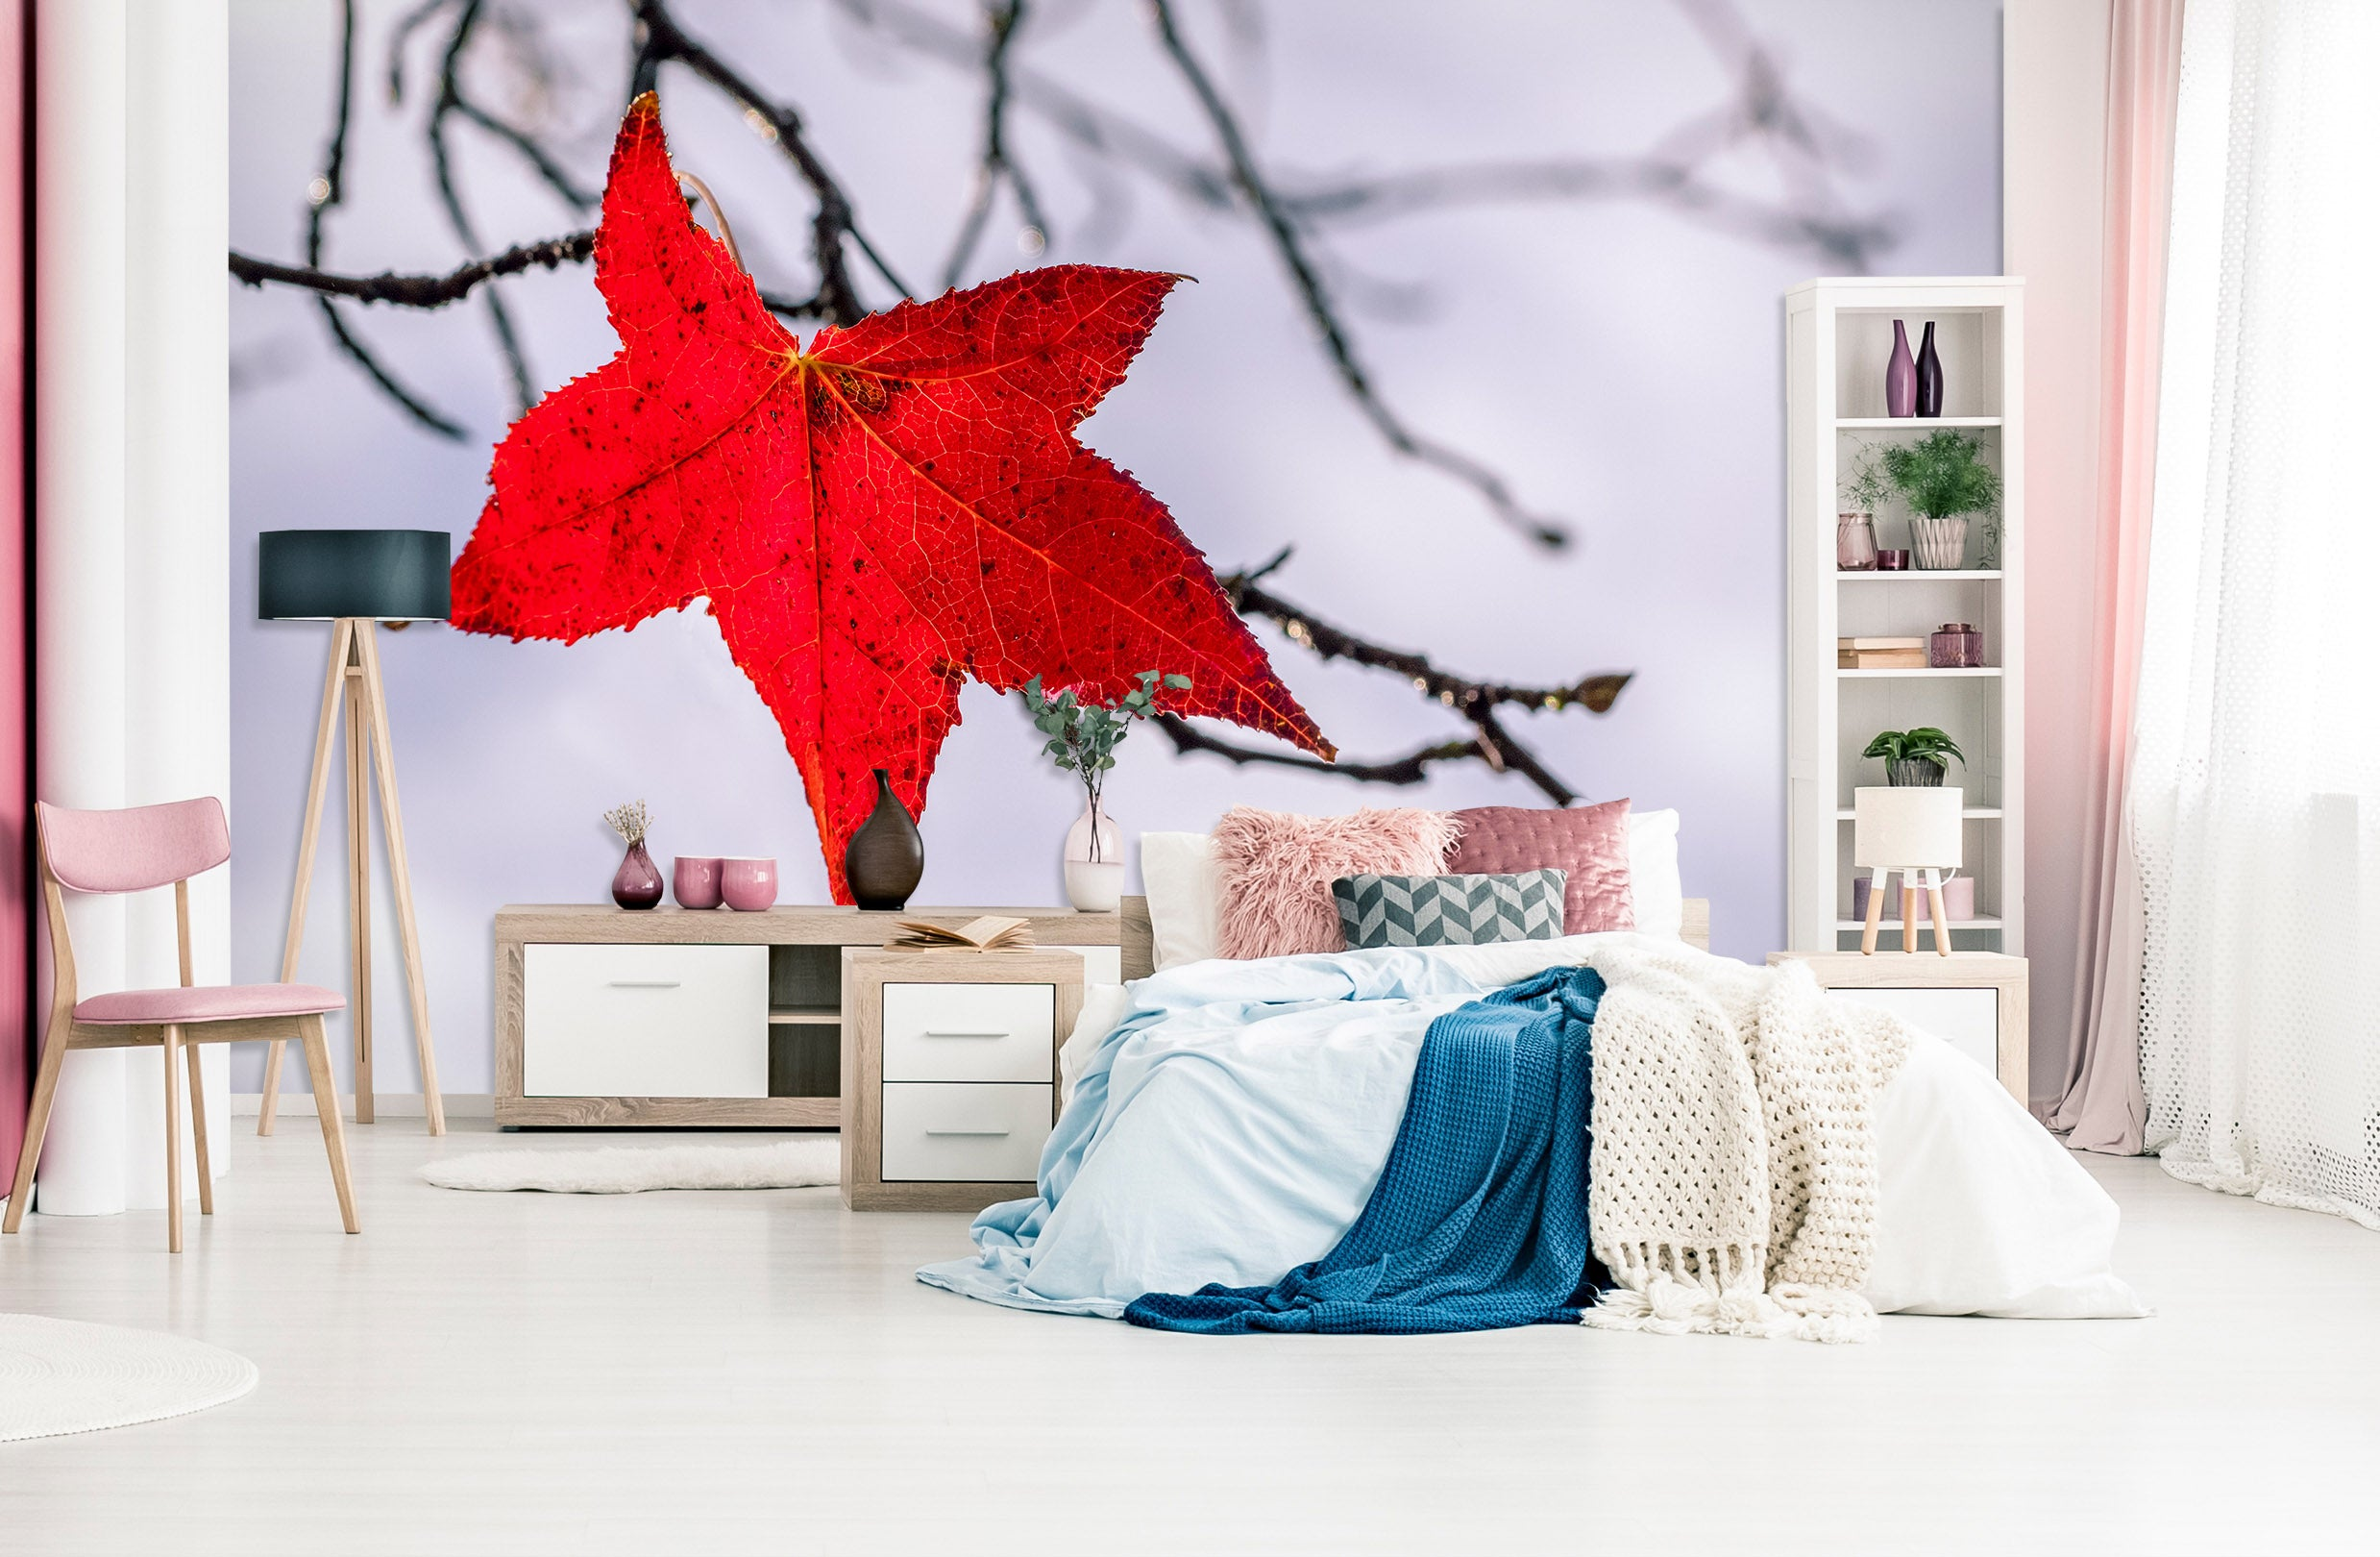 3D Red Leaf 1422 Marco Carmassi Wall Mural Wall Murals